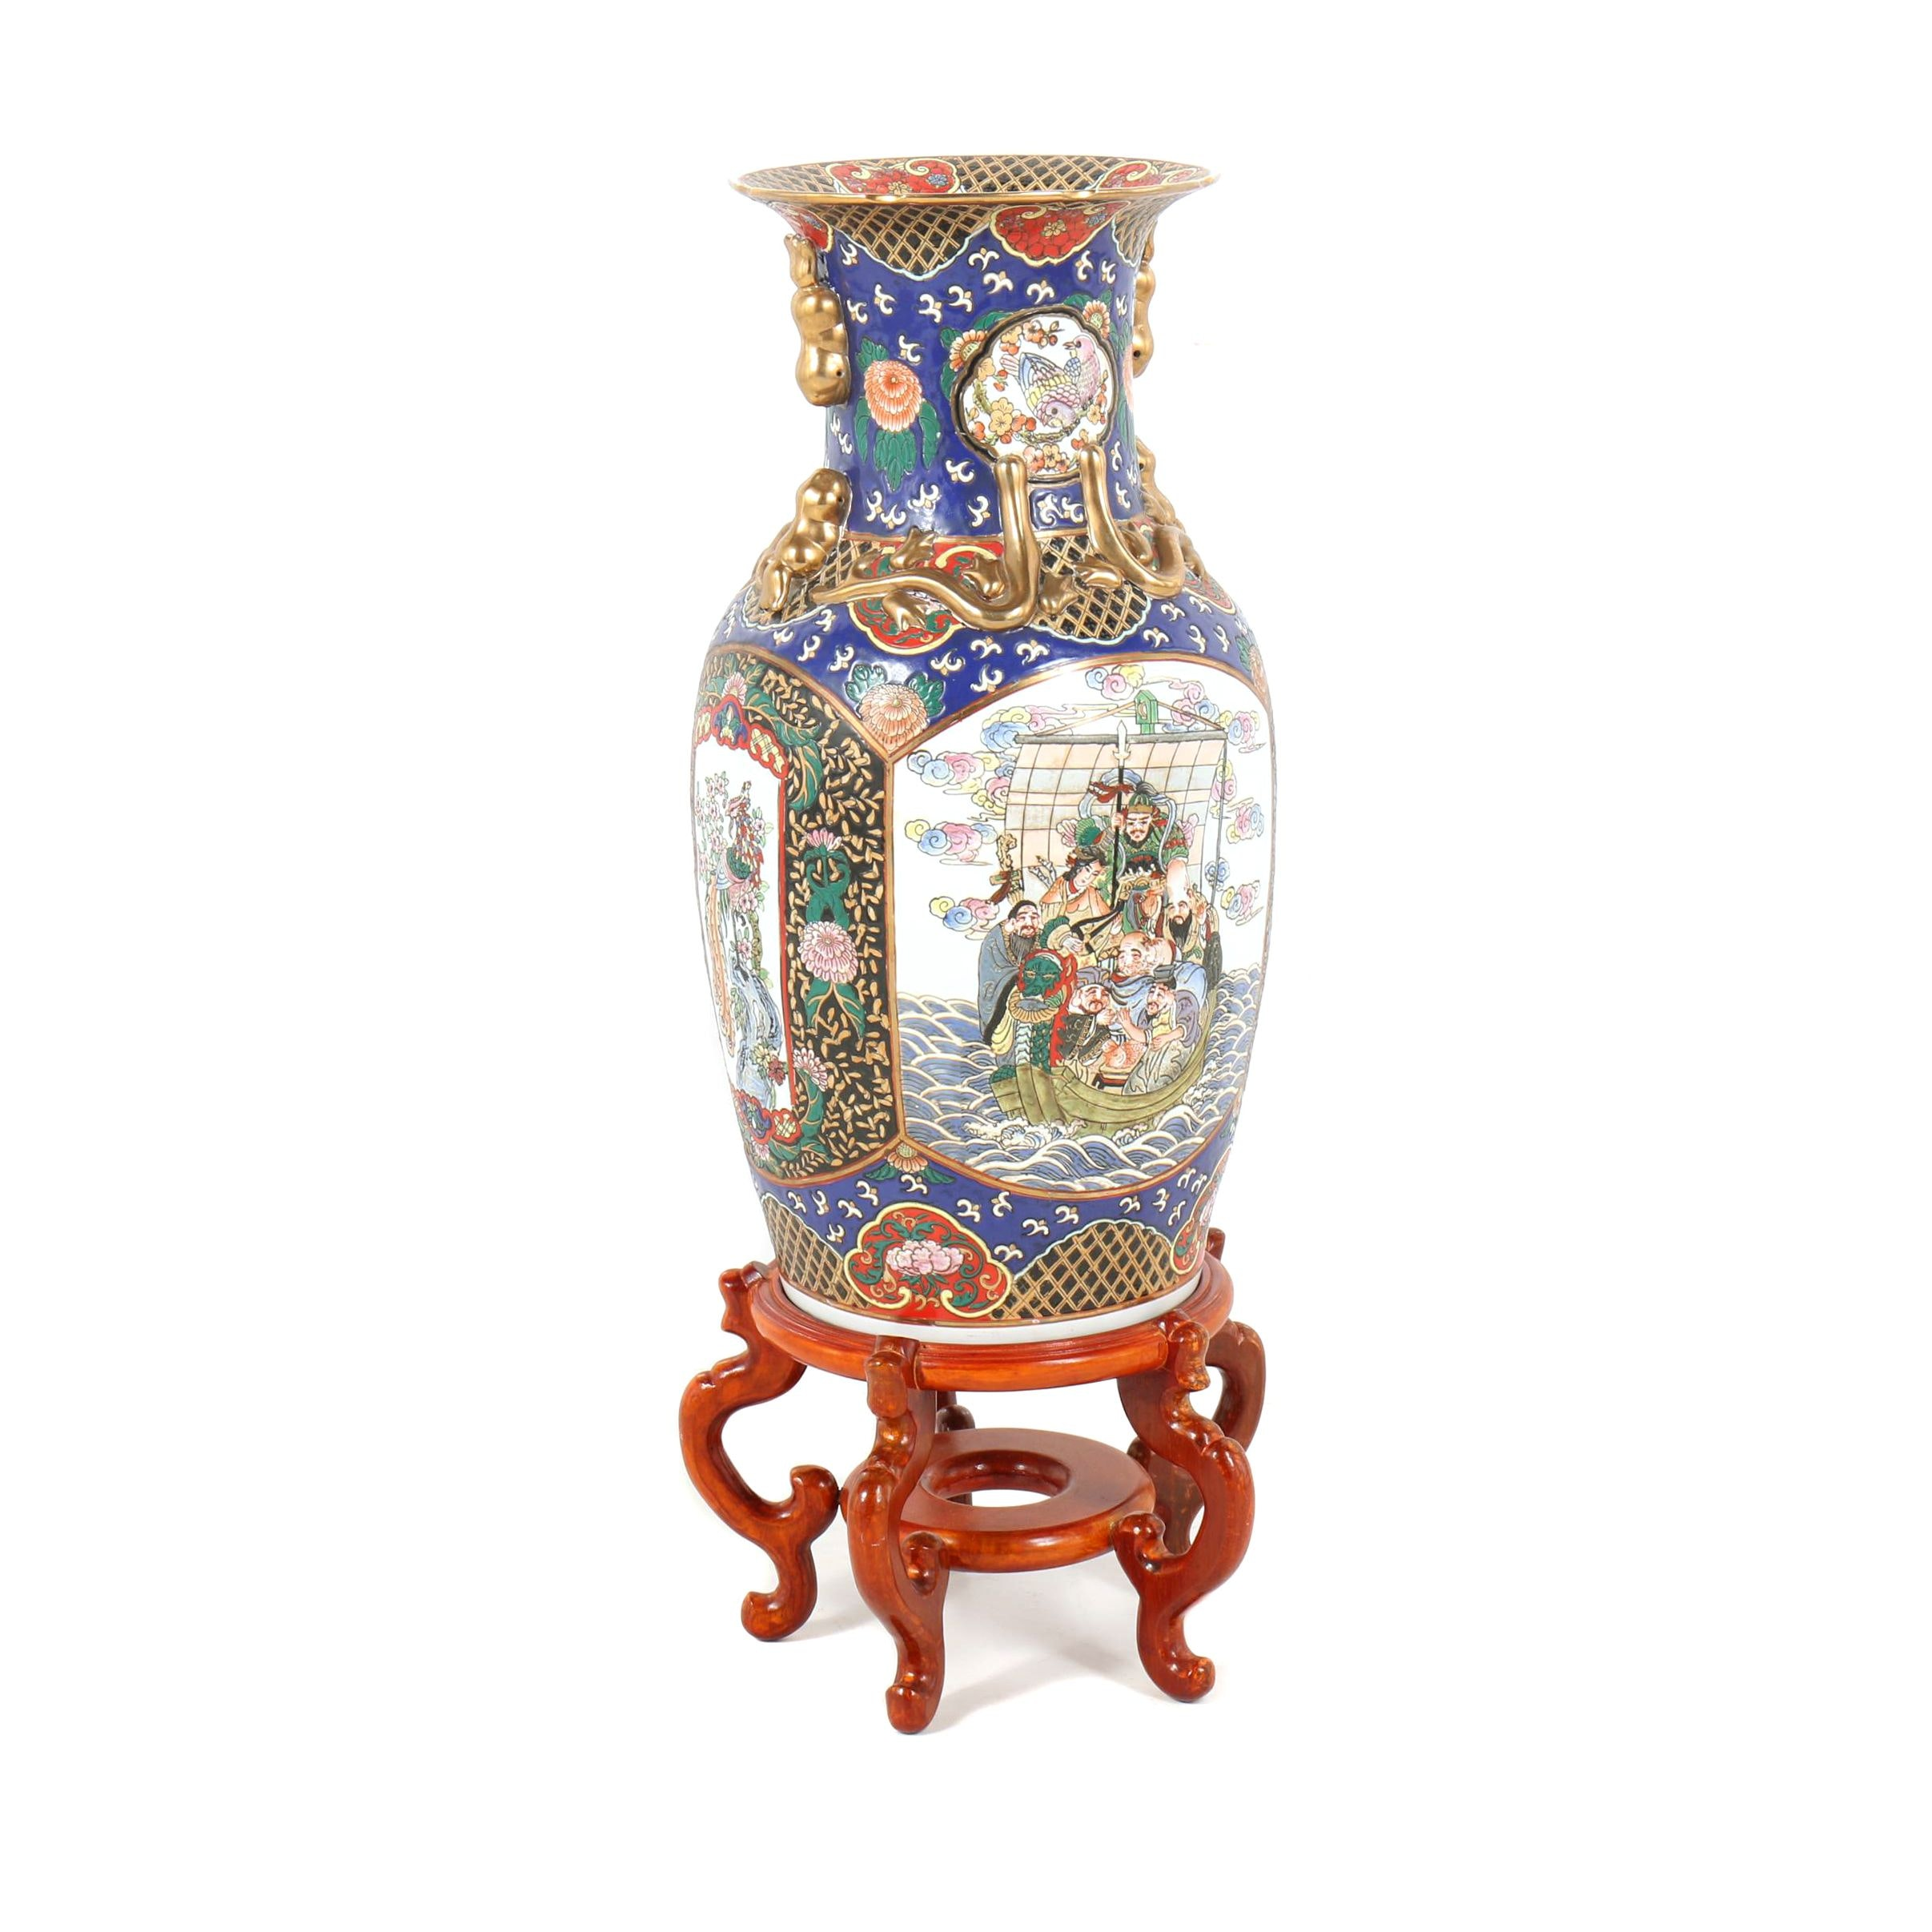 Chinese Hand-Painted Porcelain Floor Vase with Carved Wooden Stand